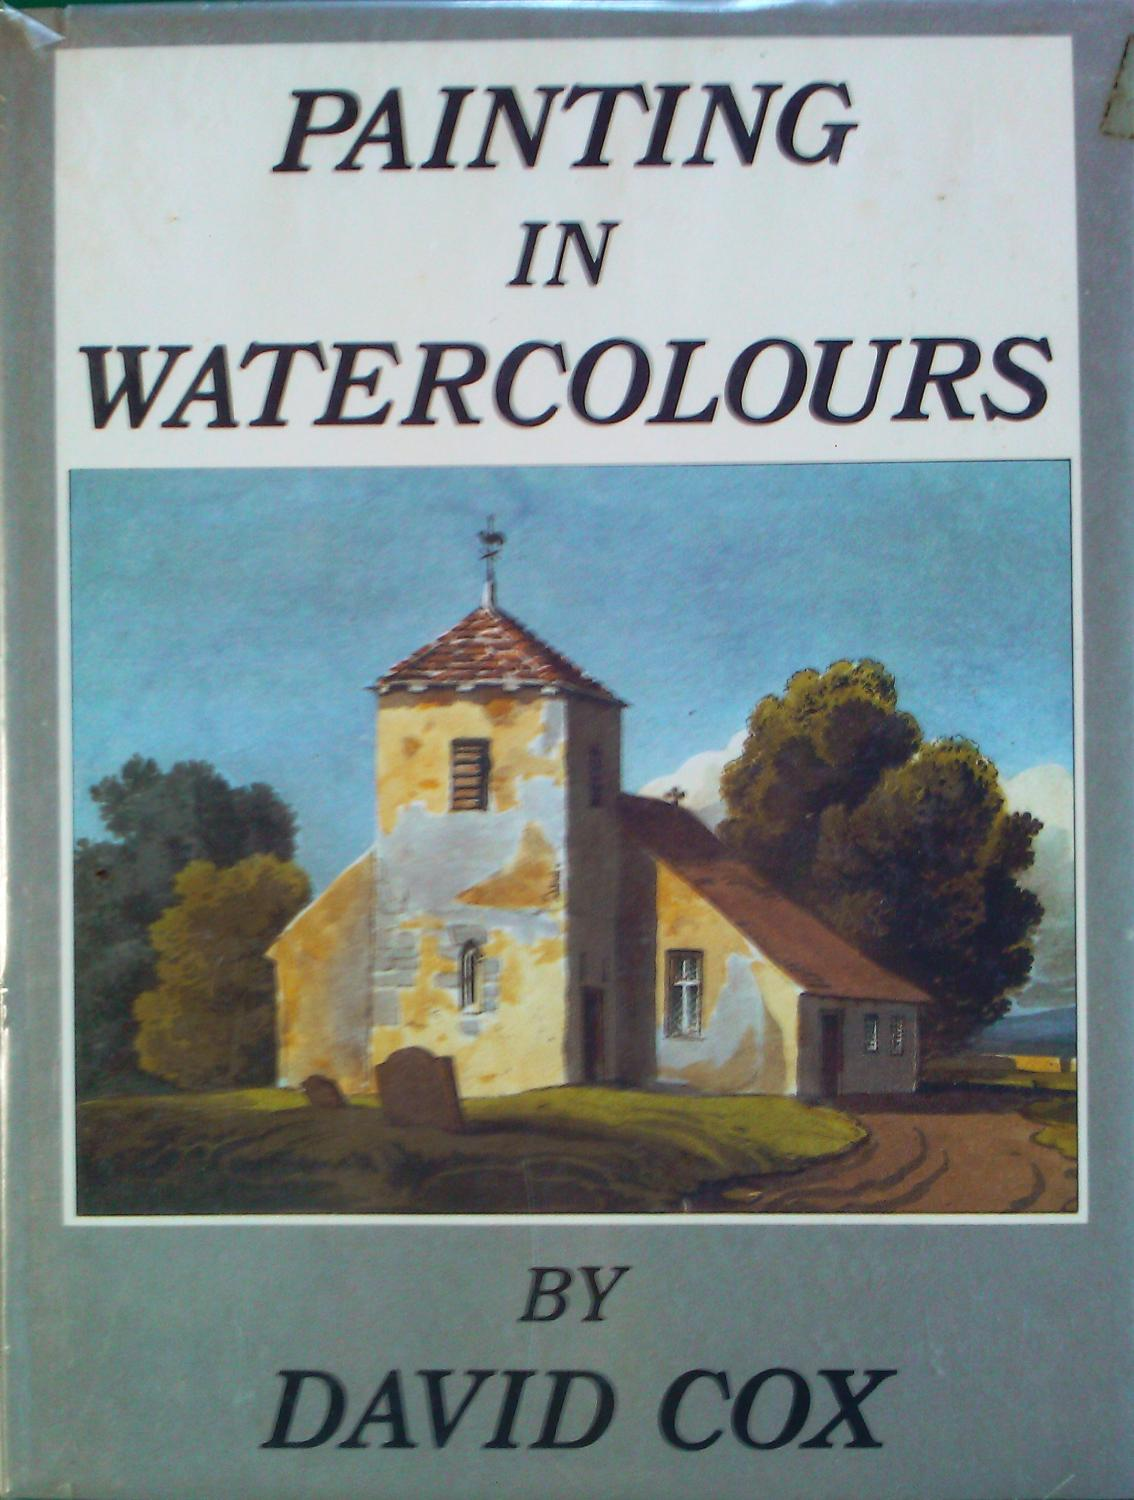 Painting In Watercolours. A Series of Progressive Lessons in the Art of Landscape Painting in Watercolours.